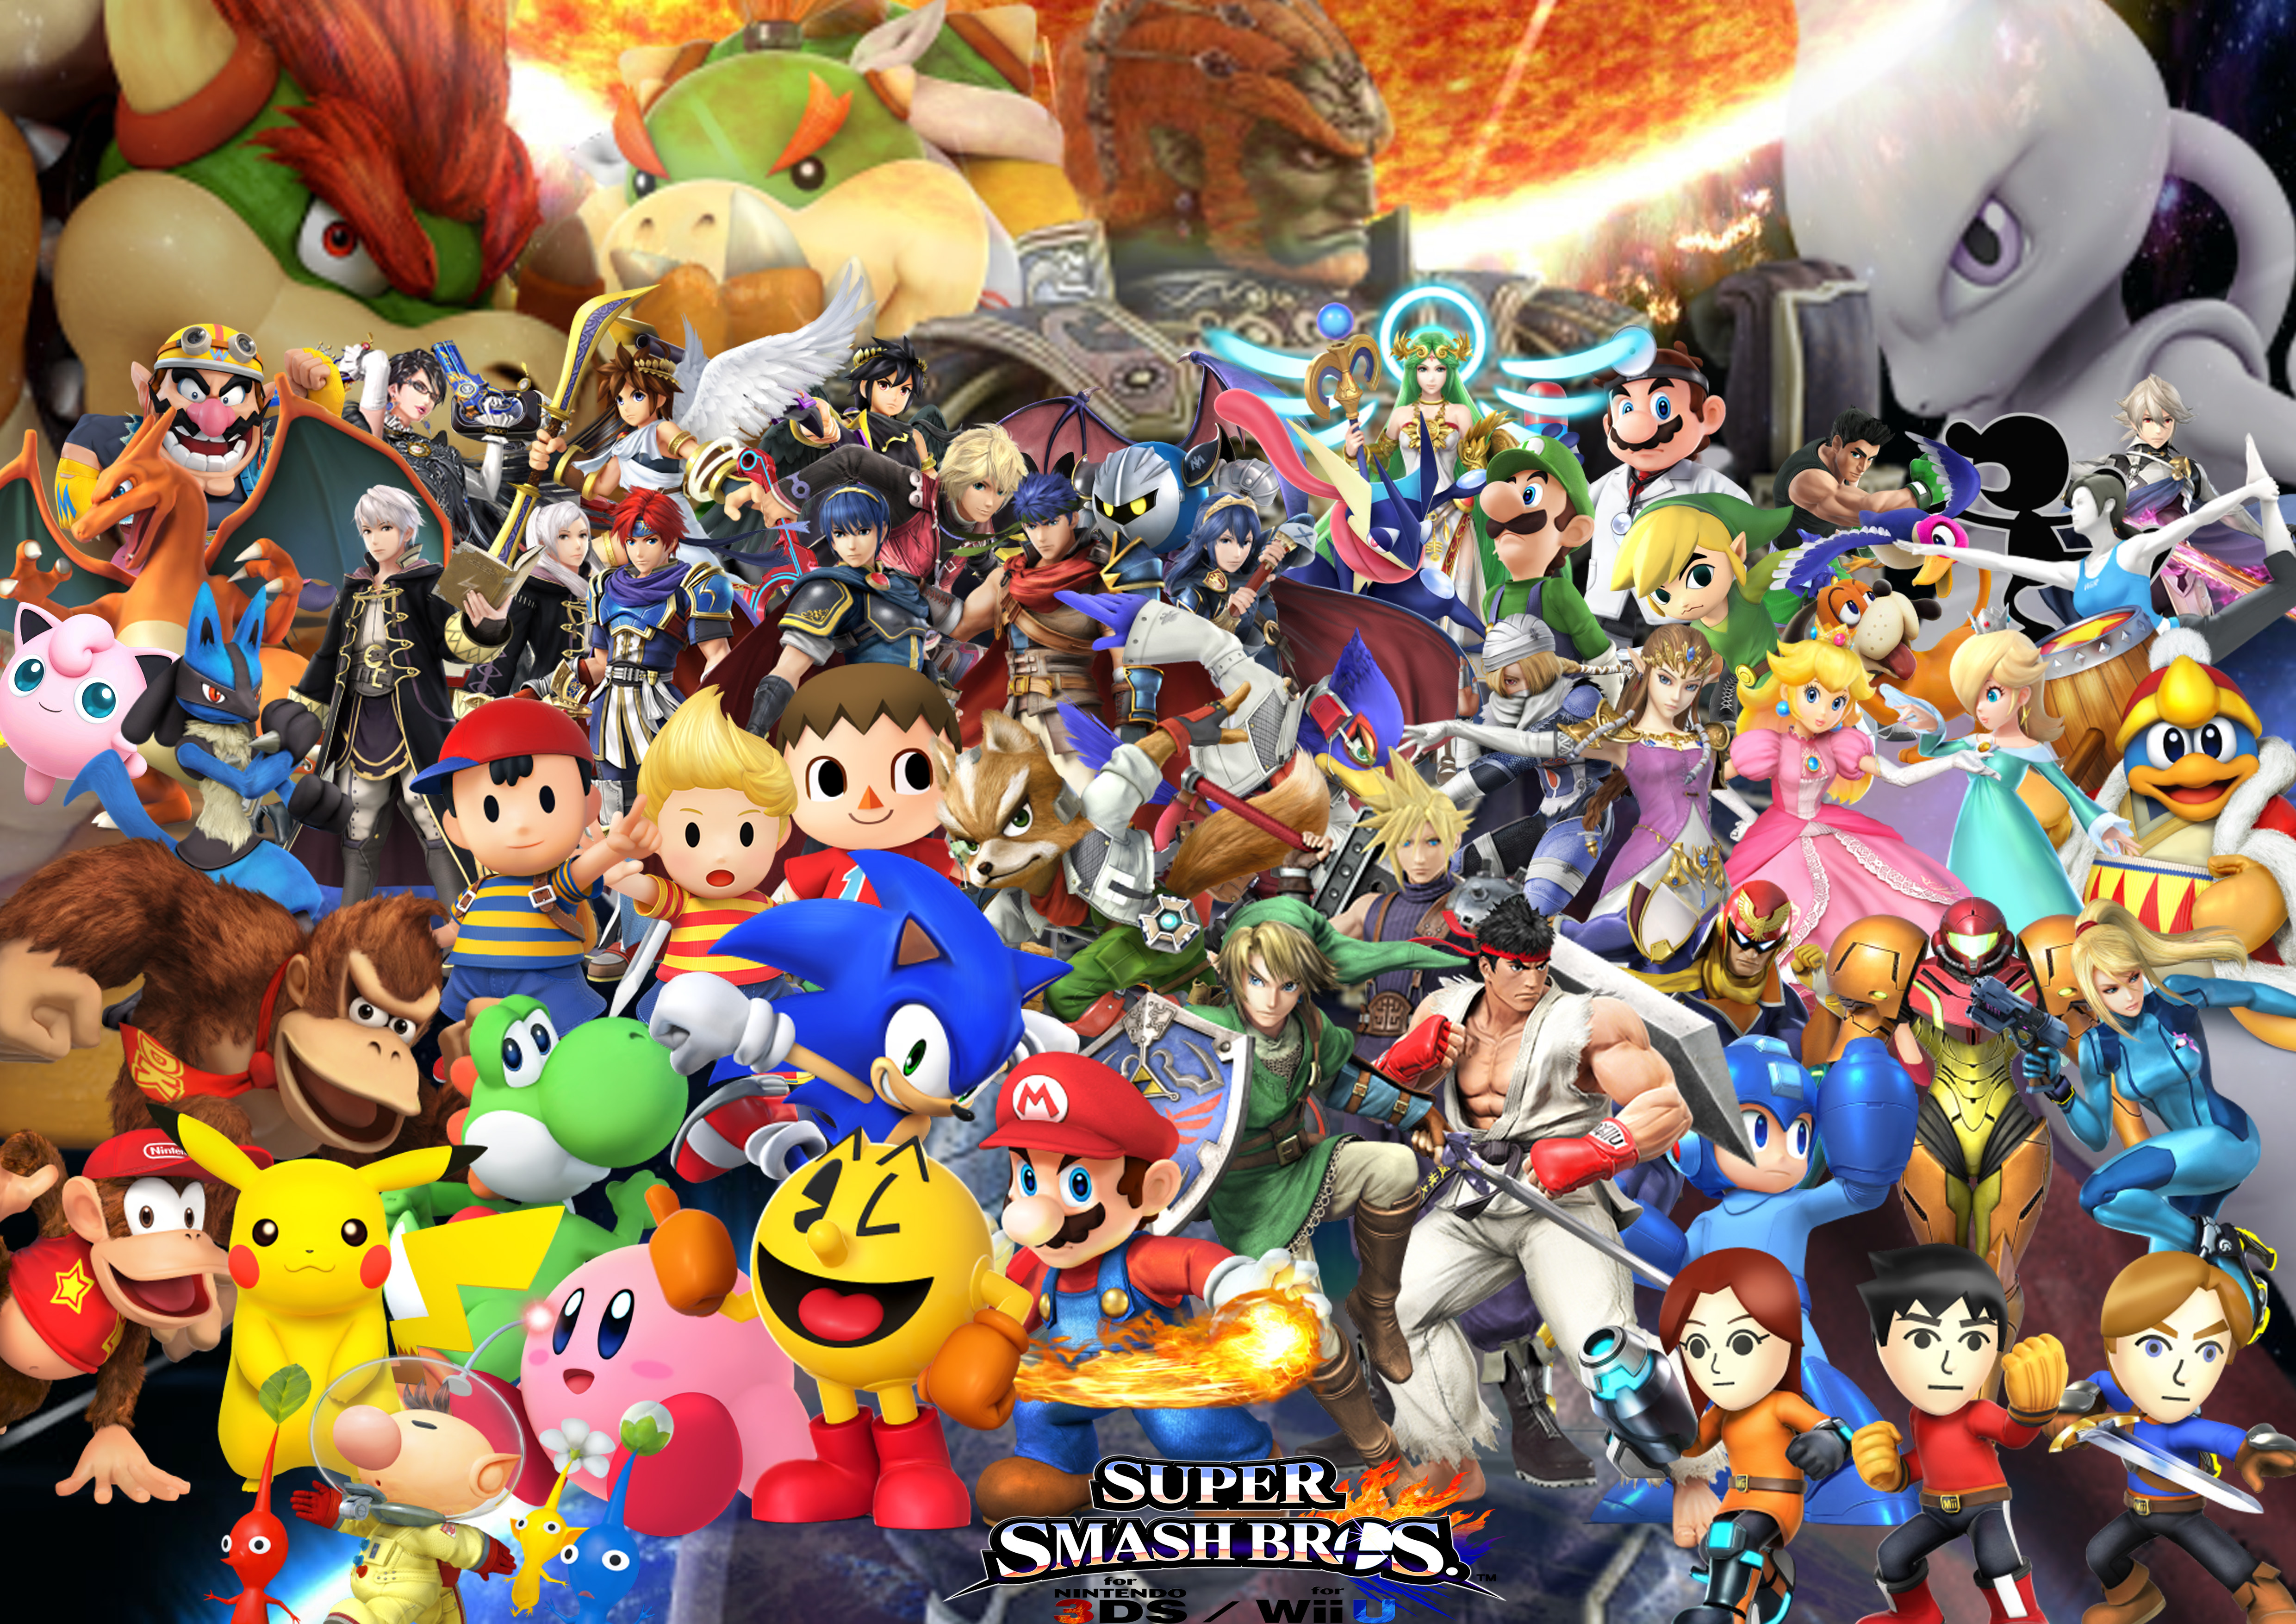 Anime Characters For Smash : Super smash bros wii u and ds characters with dlc by